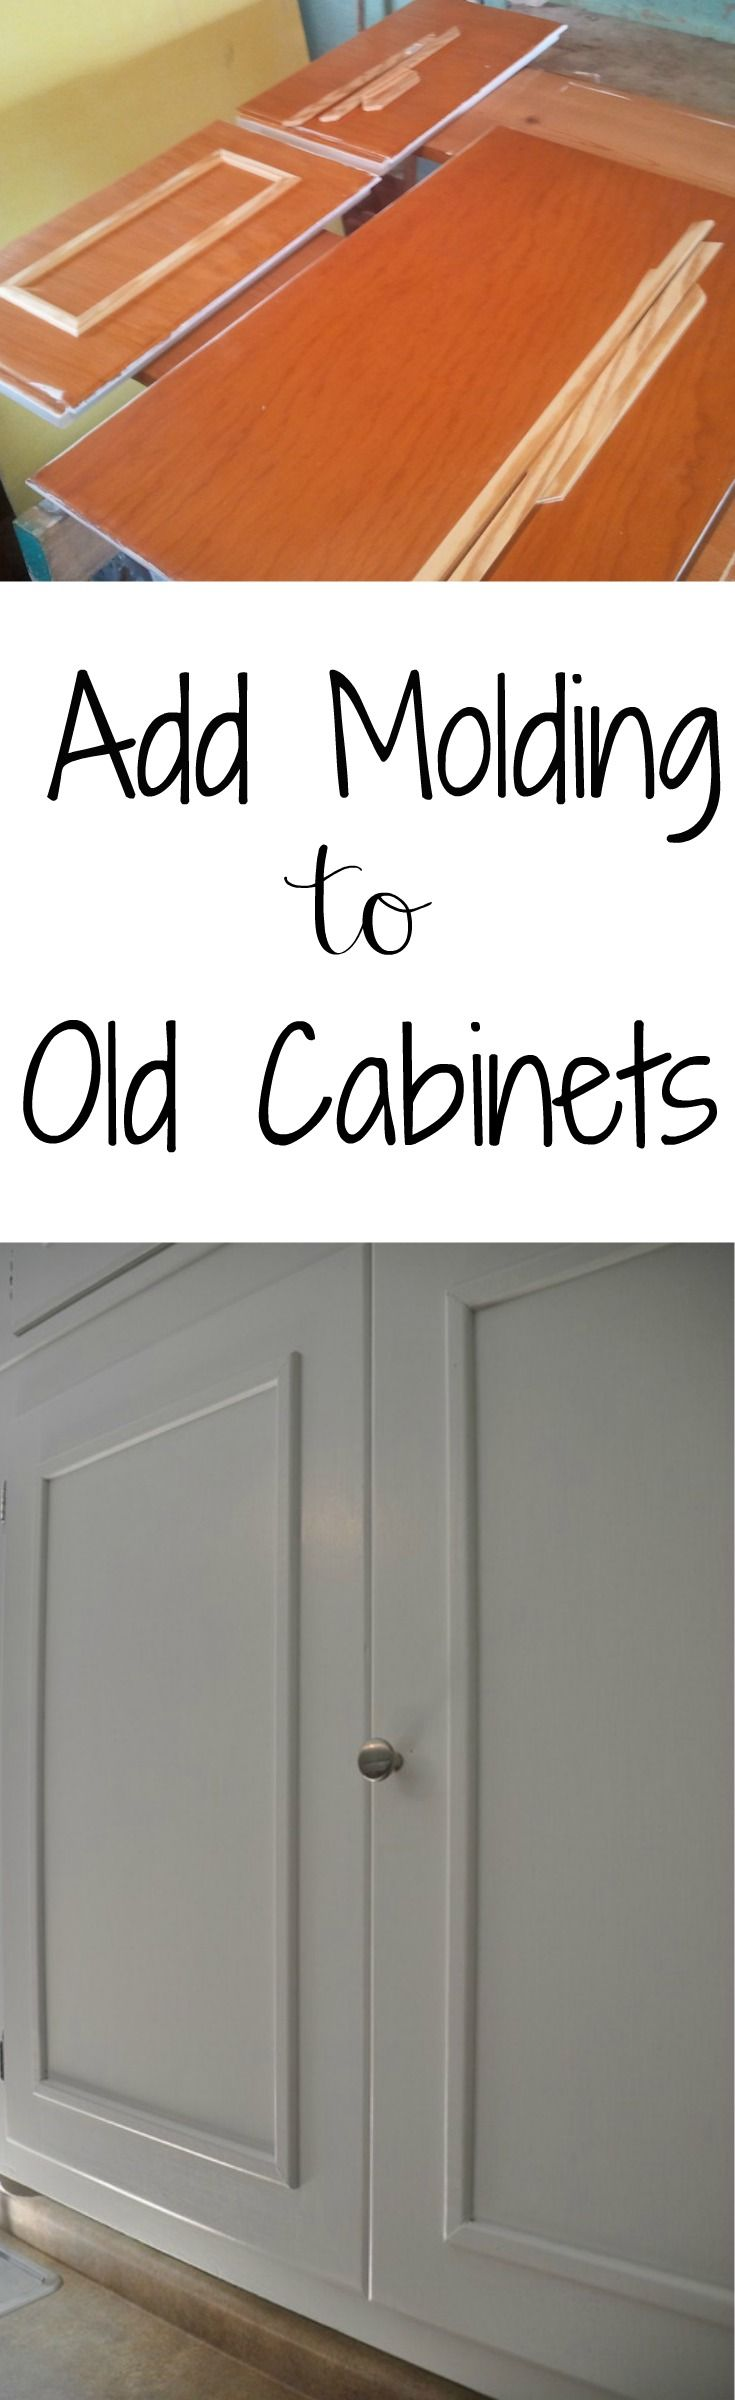 cabinet door makeover kitchen cabinet updates Add Molding to Old Cabinets Great way to update those old and boring cabinets